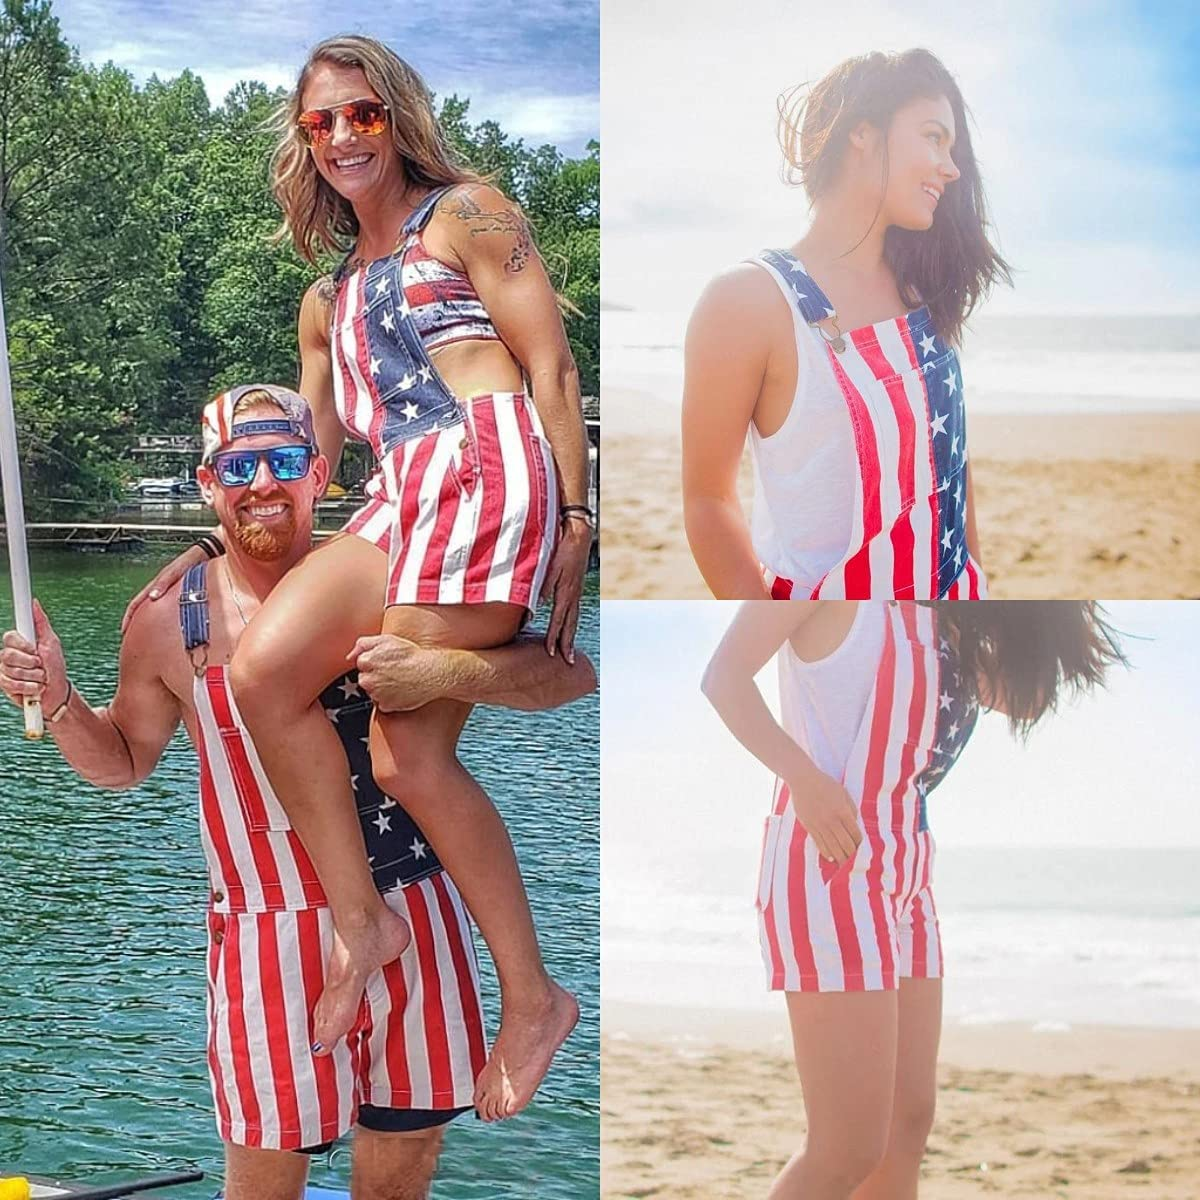 RJFYPX Couple Denim Overalls, Independence Day Overalls, American Flag Overalls